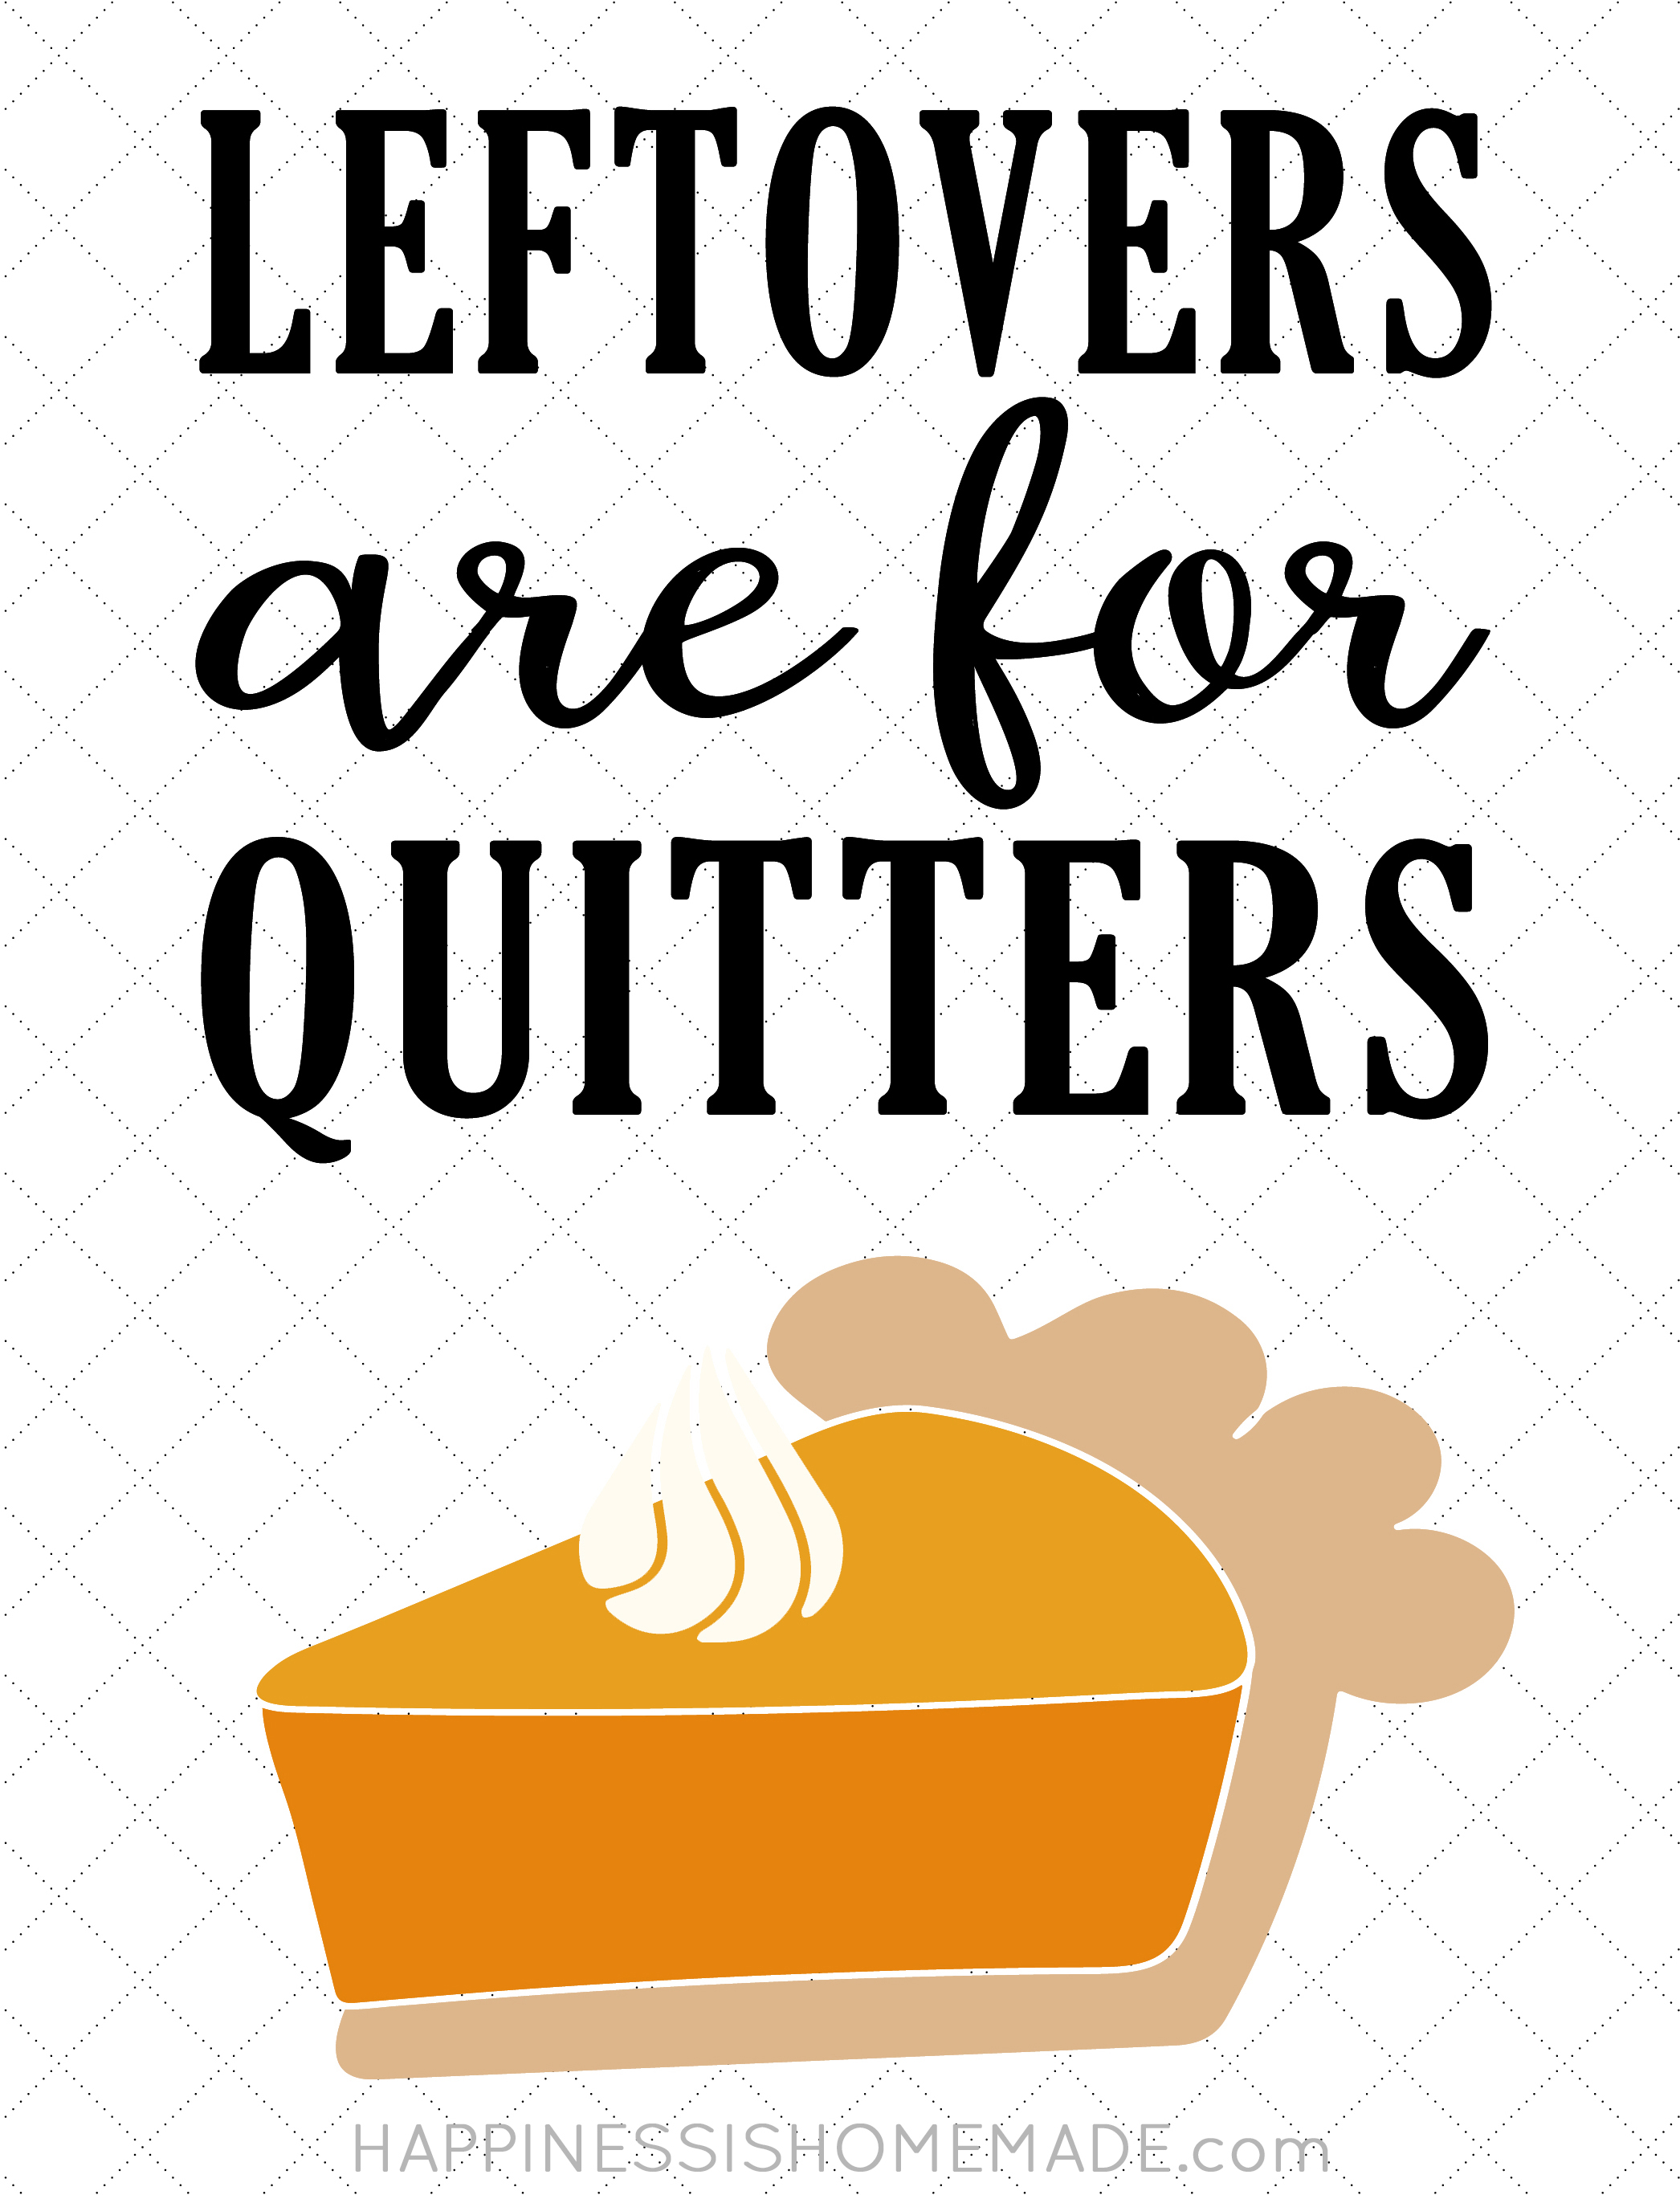 leftovers are for quitters svg #525, Download drawings